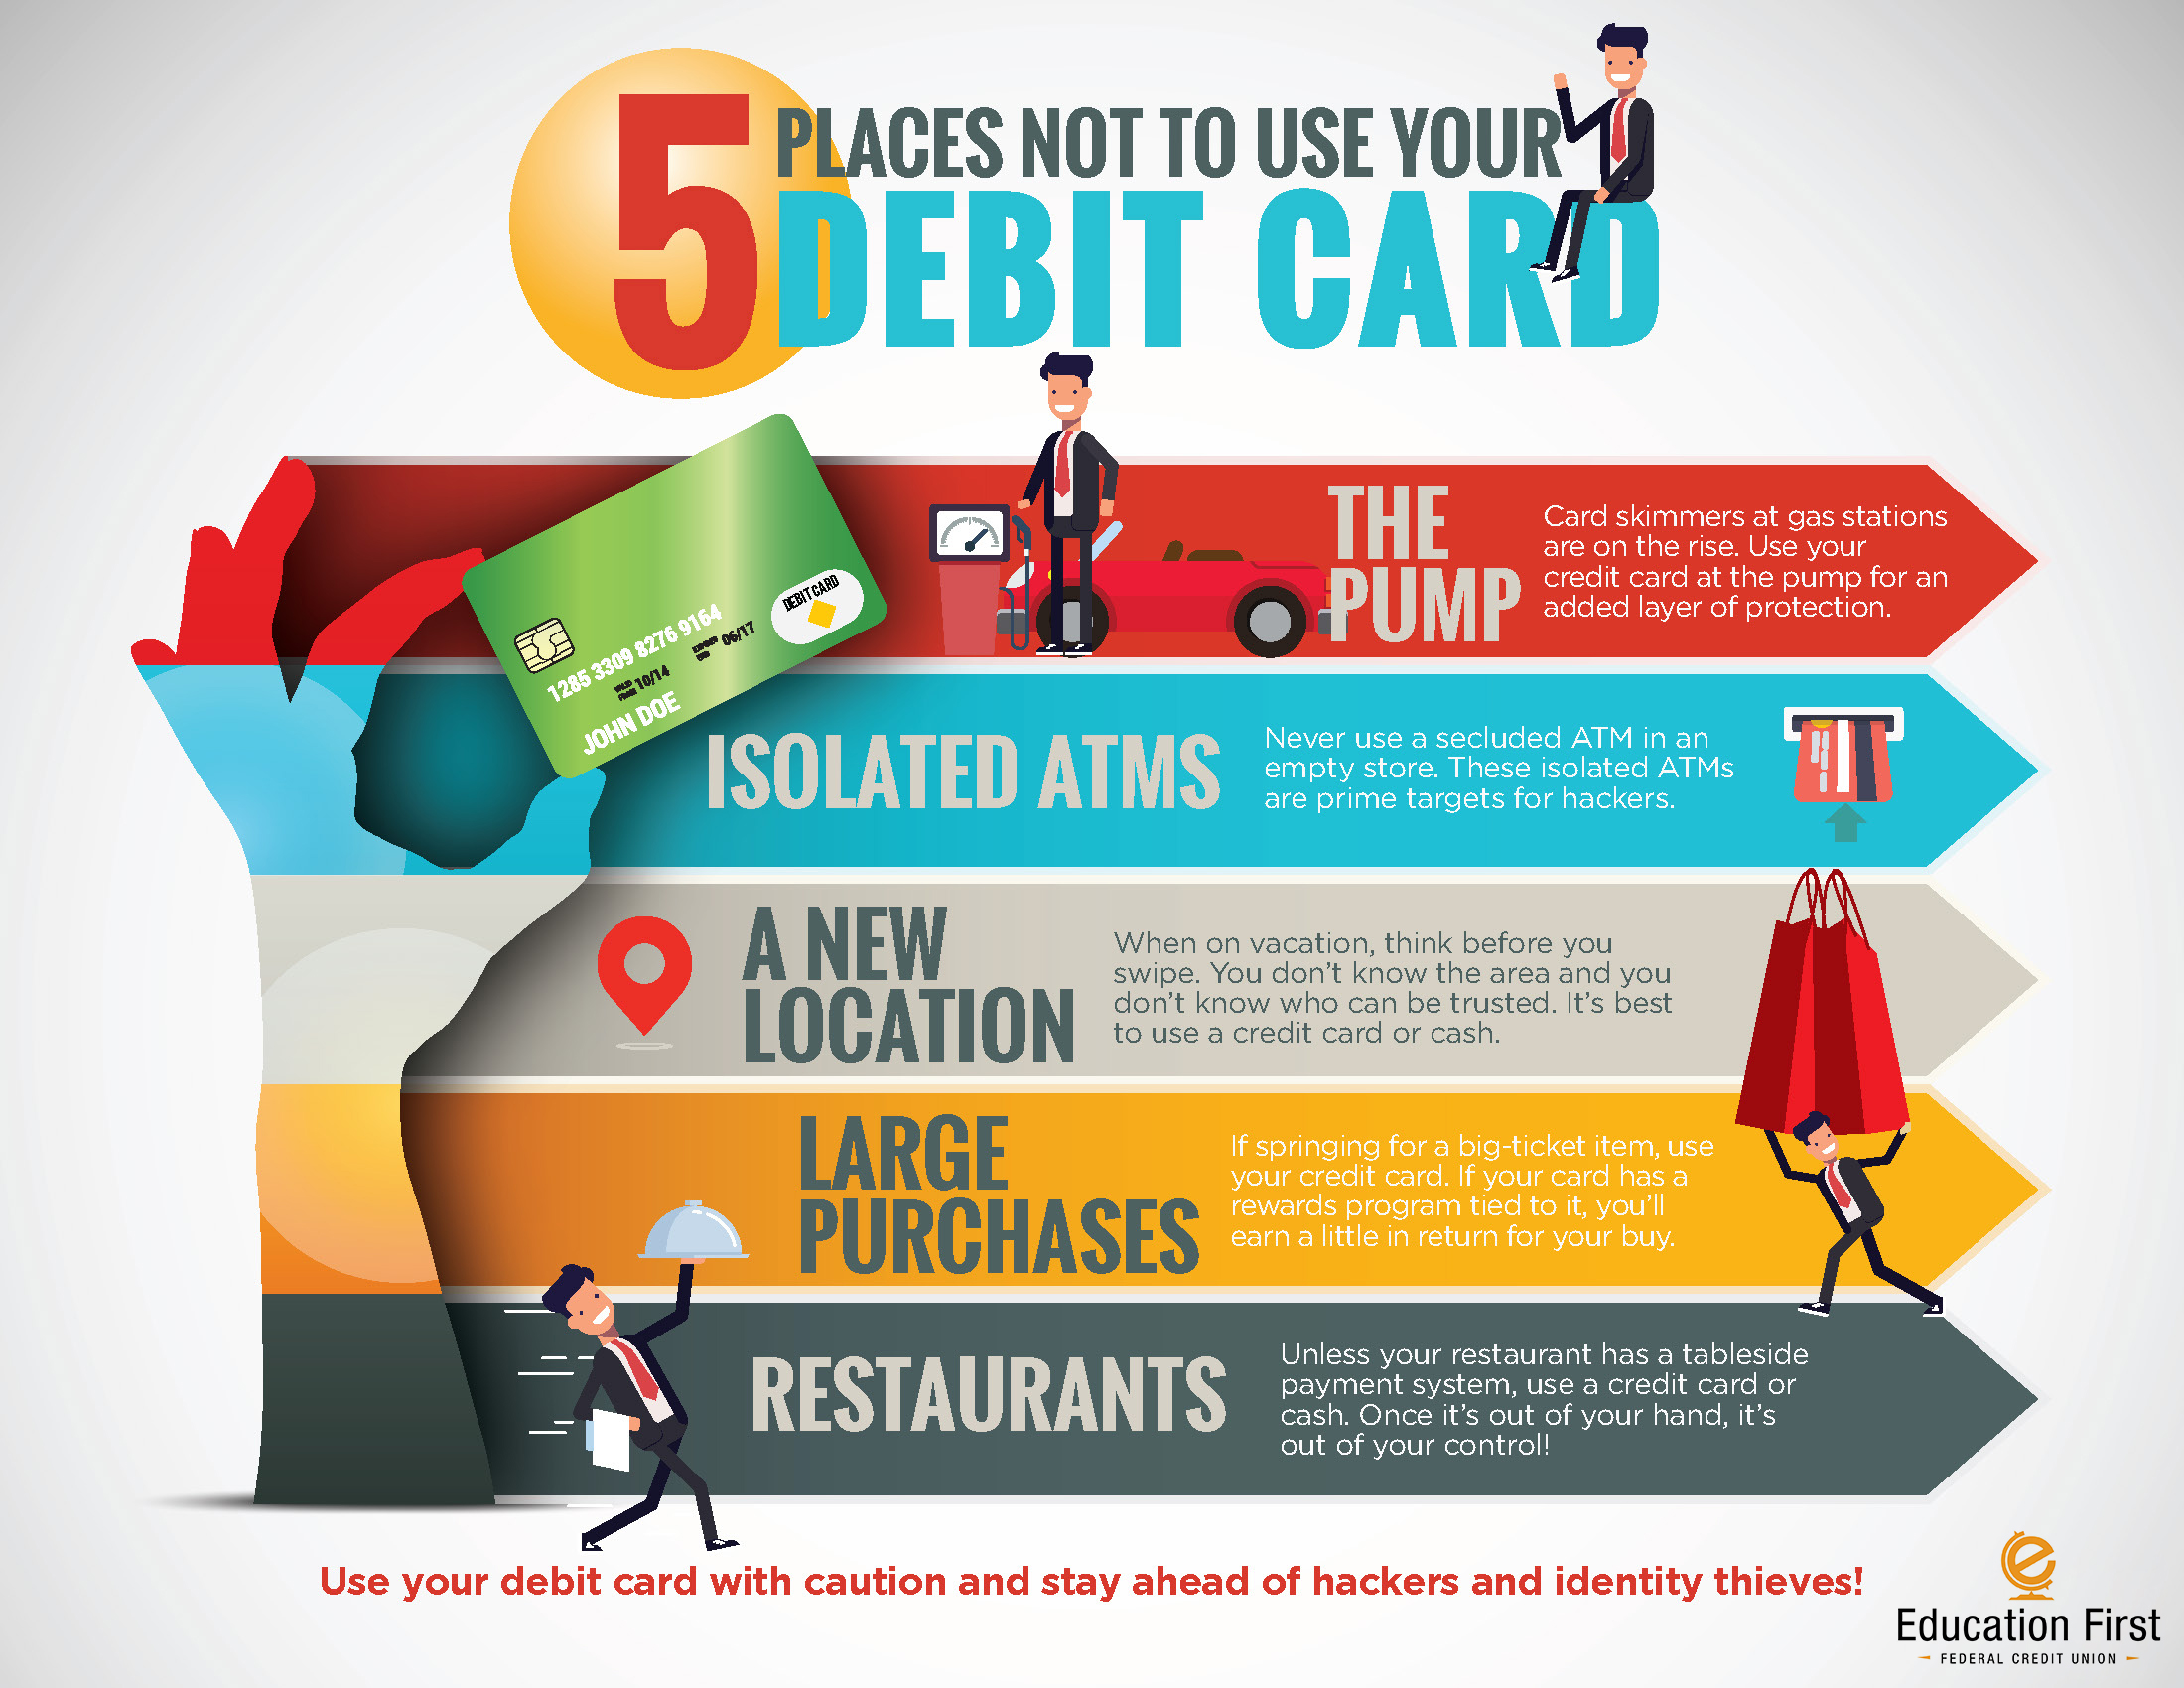 5 places to not use your debit card